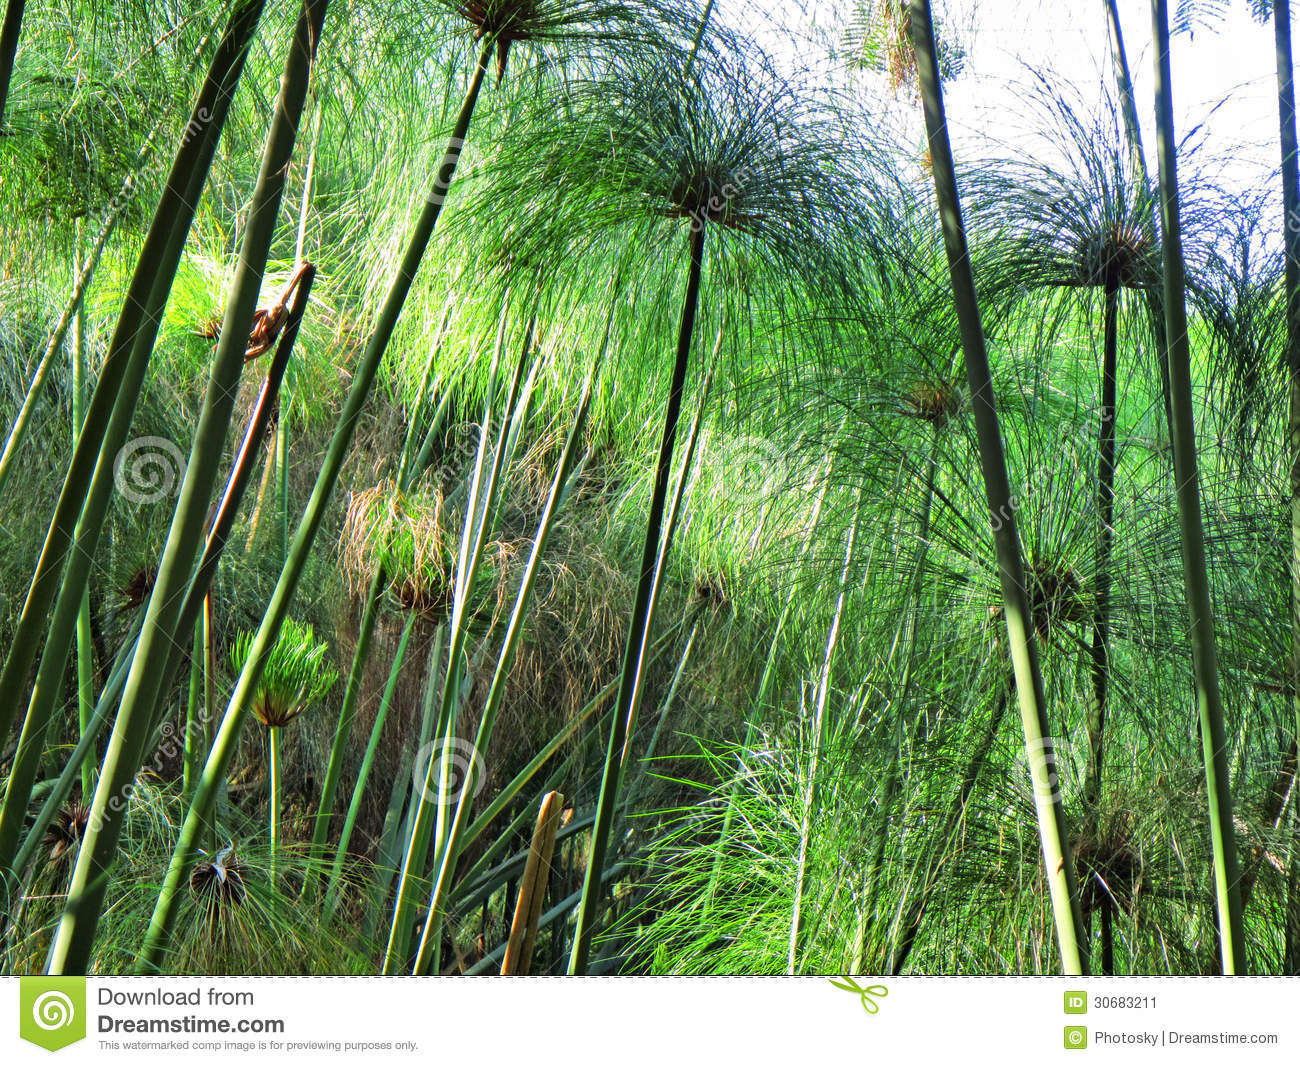 Garden reed like plants in sunset light stock image - Plantas trepadoras de sol ...